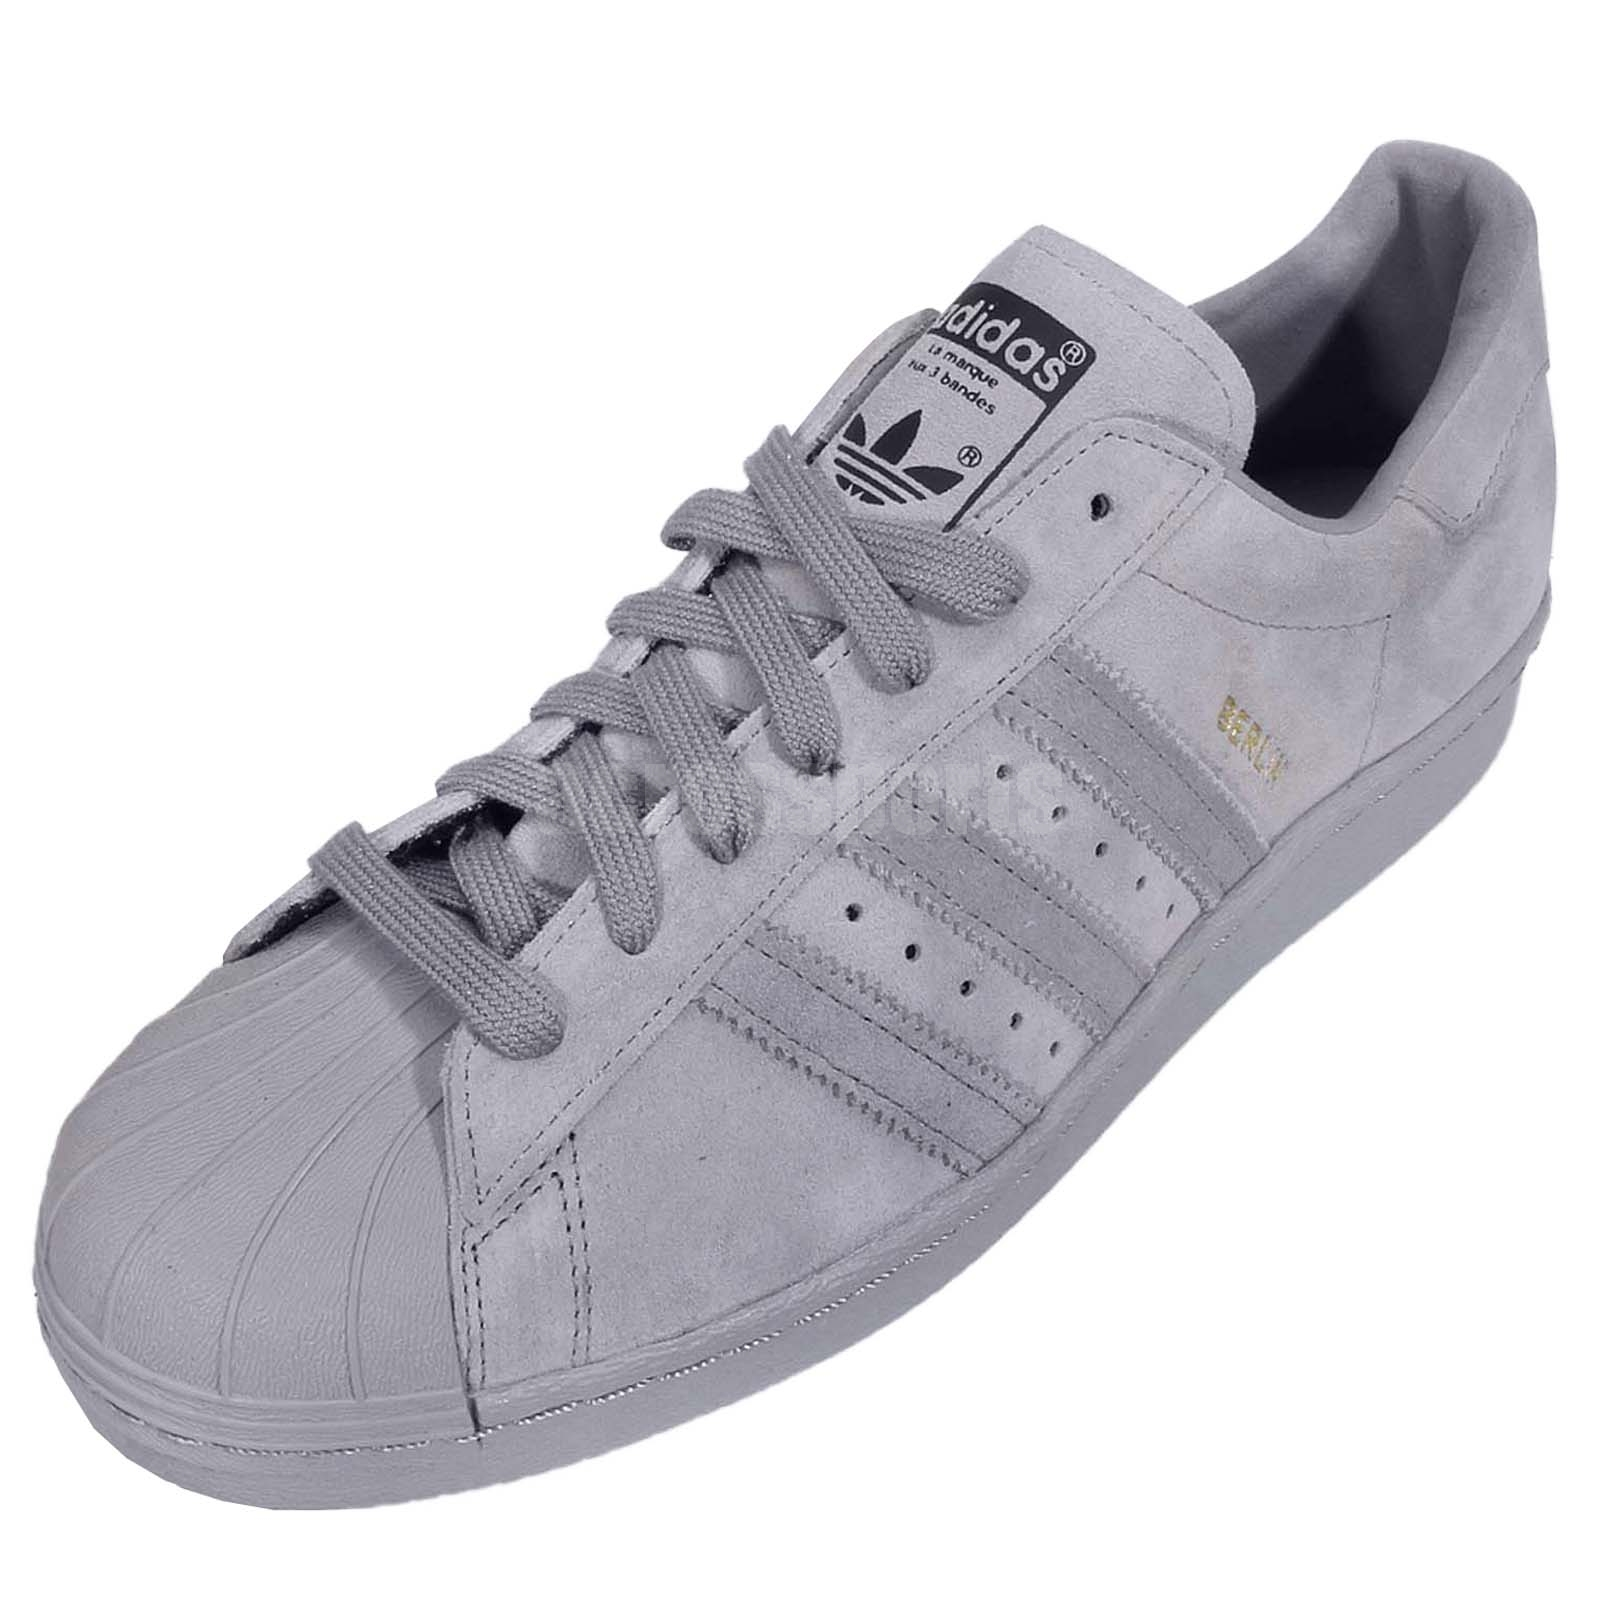 big sale 5dce1 031da hot adidas superstar berlin ebay 06cbf b6ae9